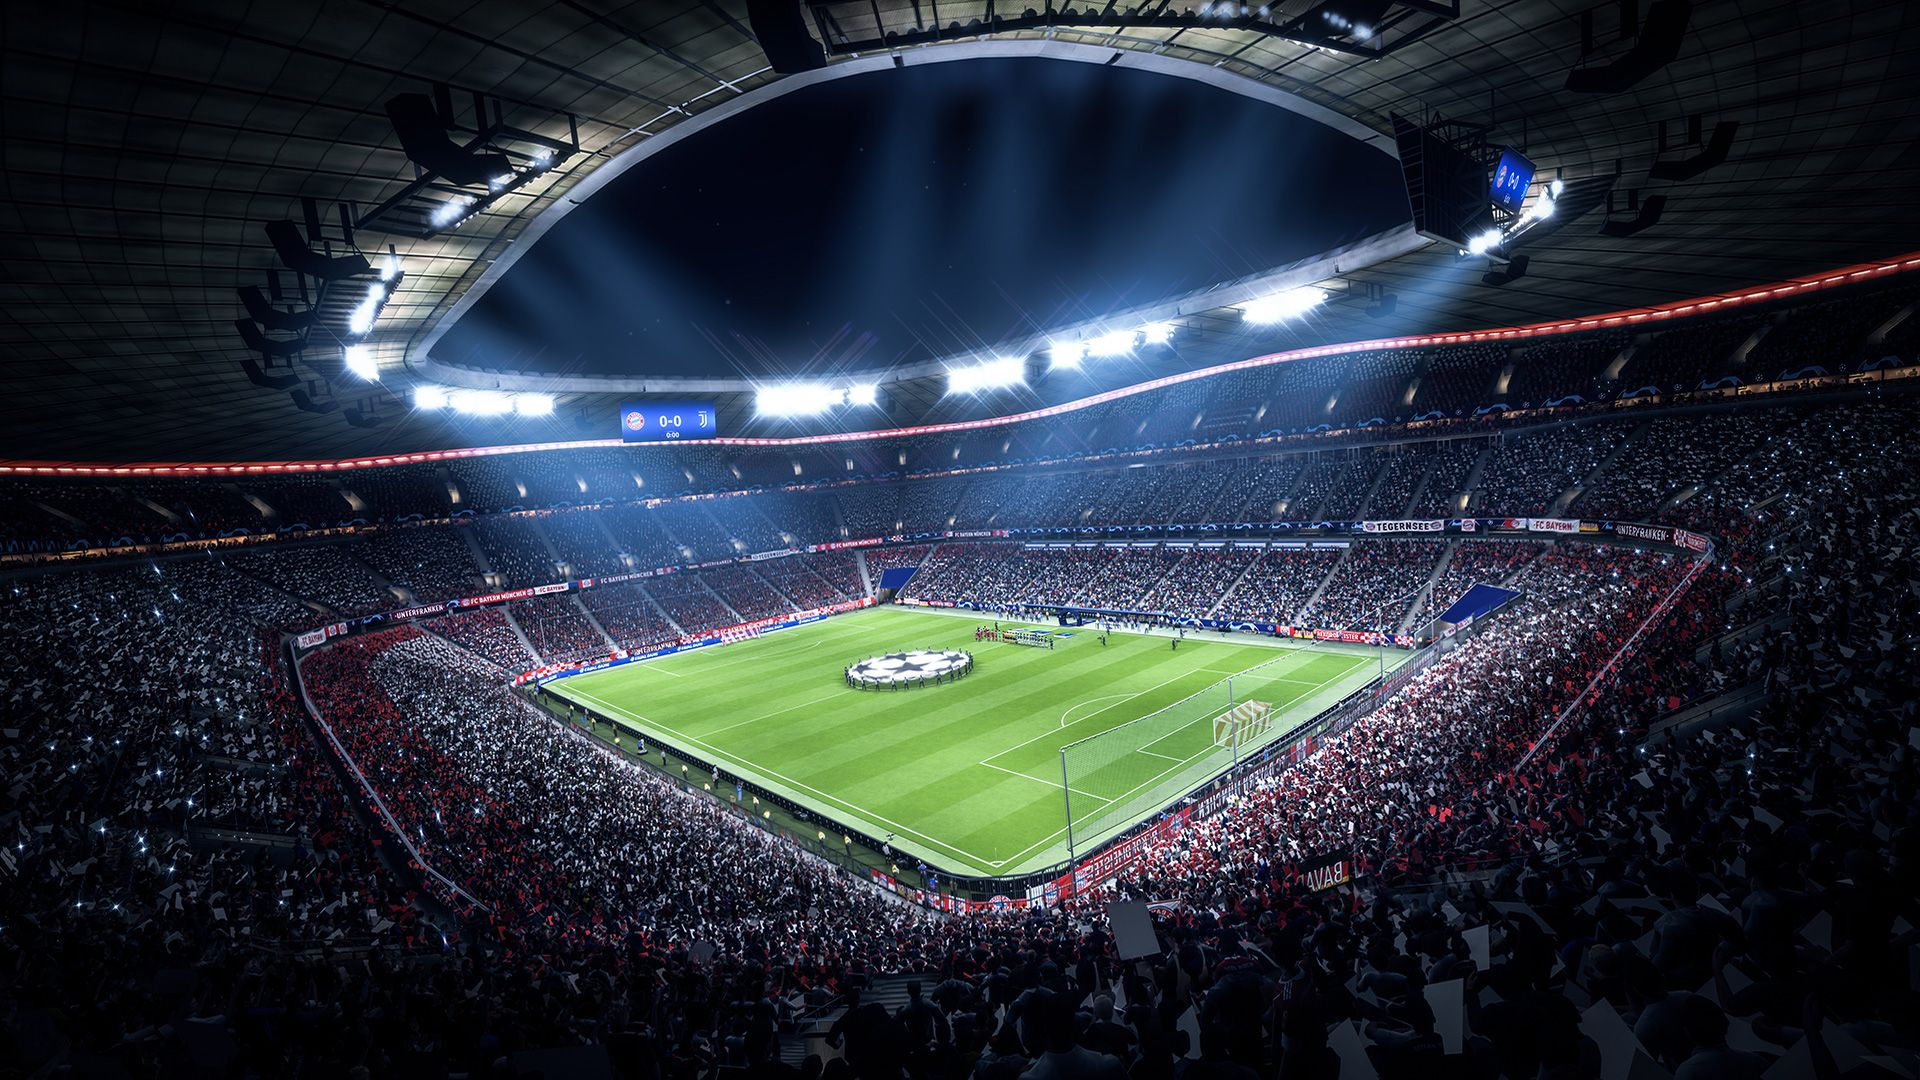 Champions League Wallpapers Top Free Champions League Backgrounds Wallpaperaccess